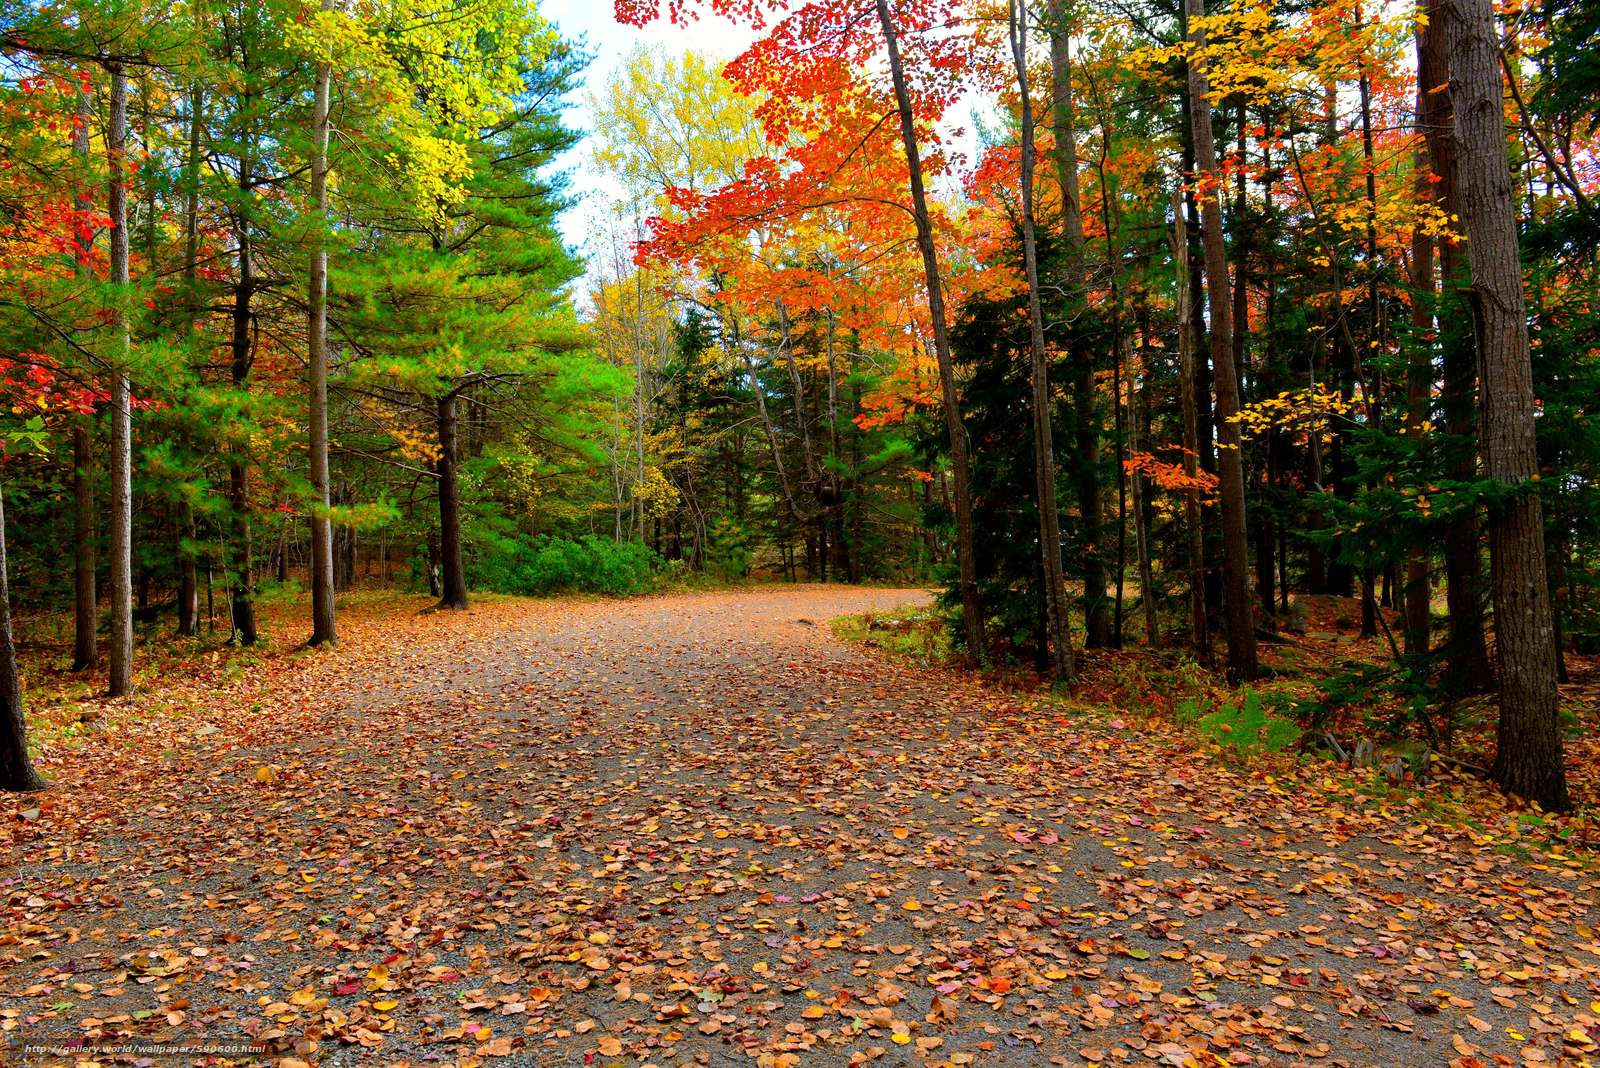 Download wallpapers Acadia National Park, autumn, road, trees free